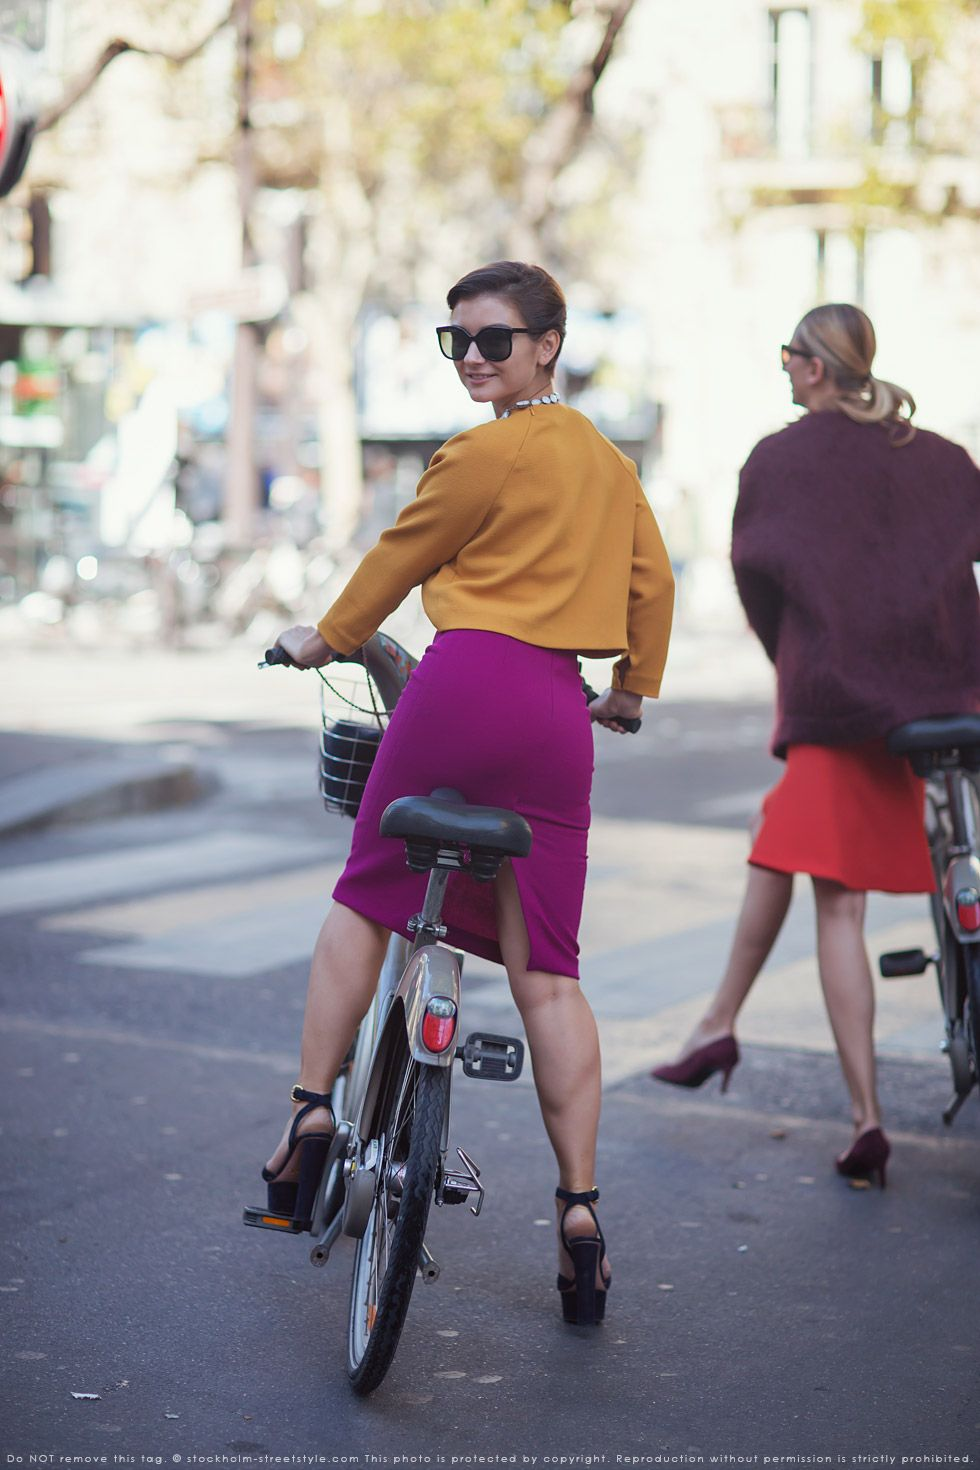 Watch 39 Fashion Girl-Approved Ways to Look Stylish WhileBiking video